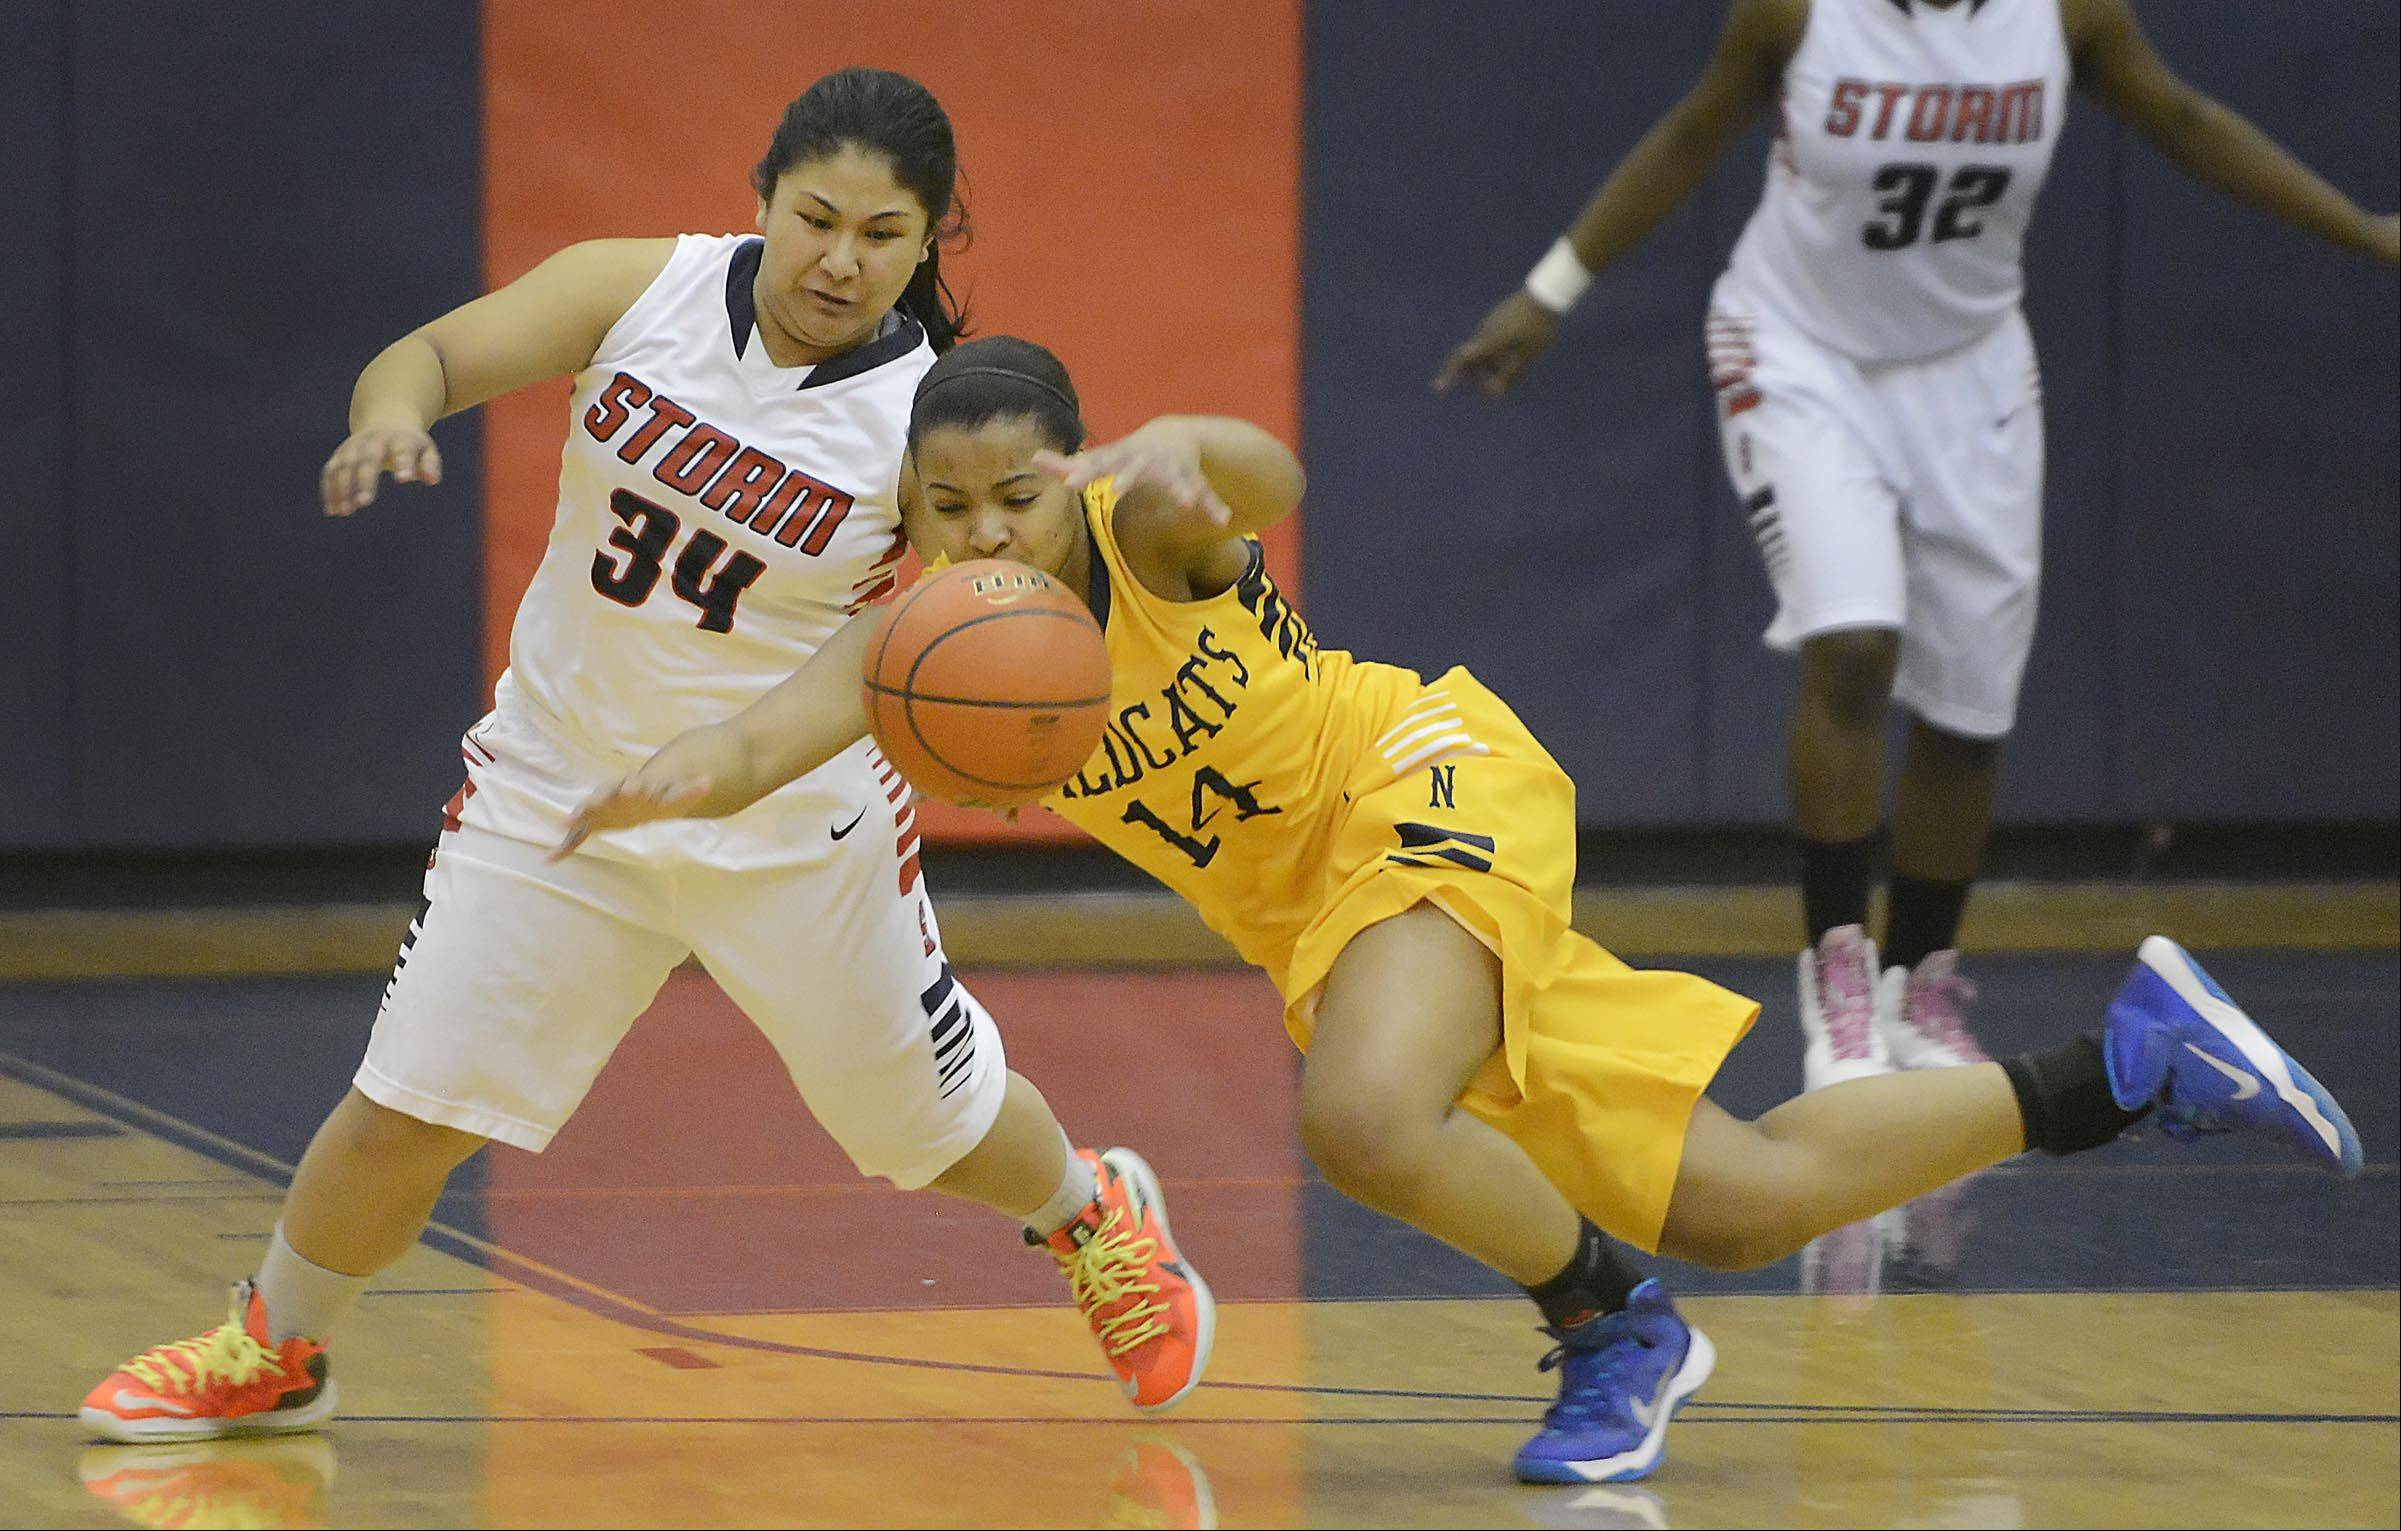 Neuqua Valley's Najee Smith falls as South Elgin's Nadia Yang defends.